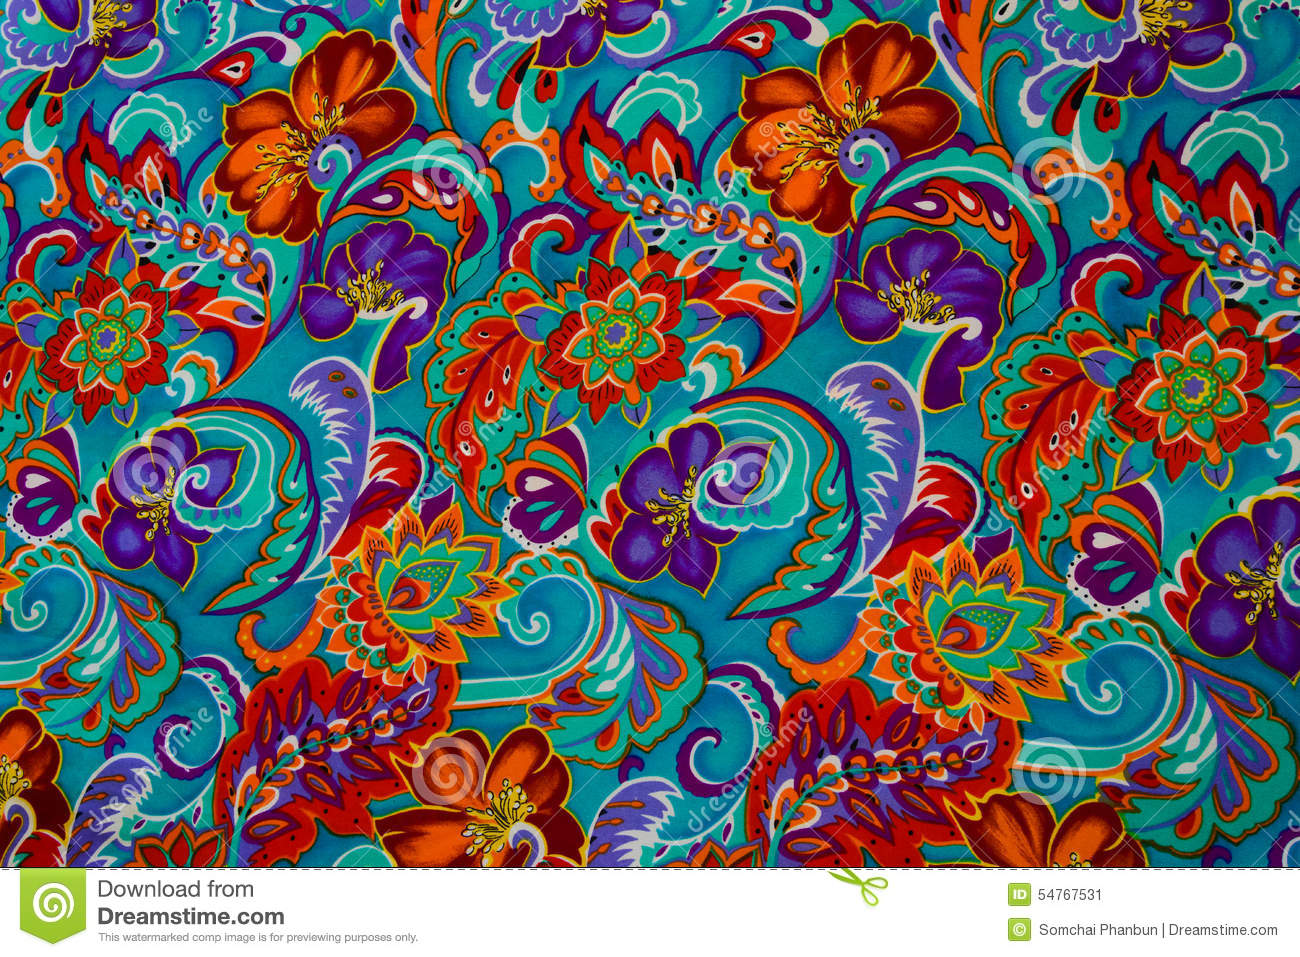 chintz wallpaper desktop - photo #10